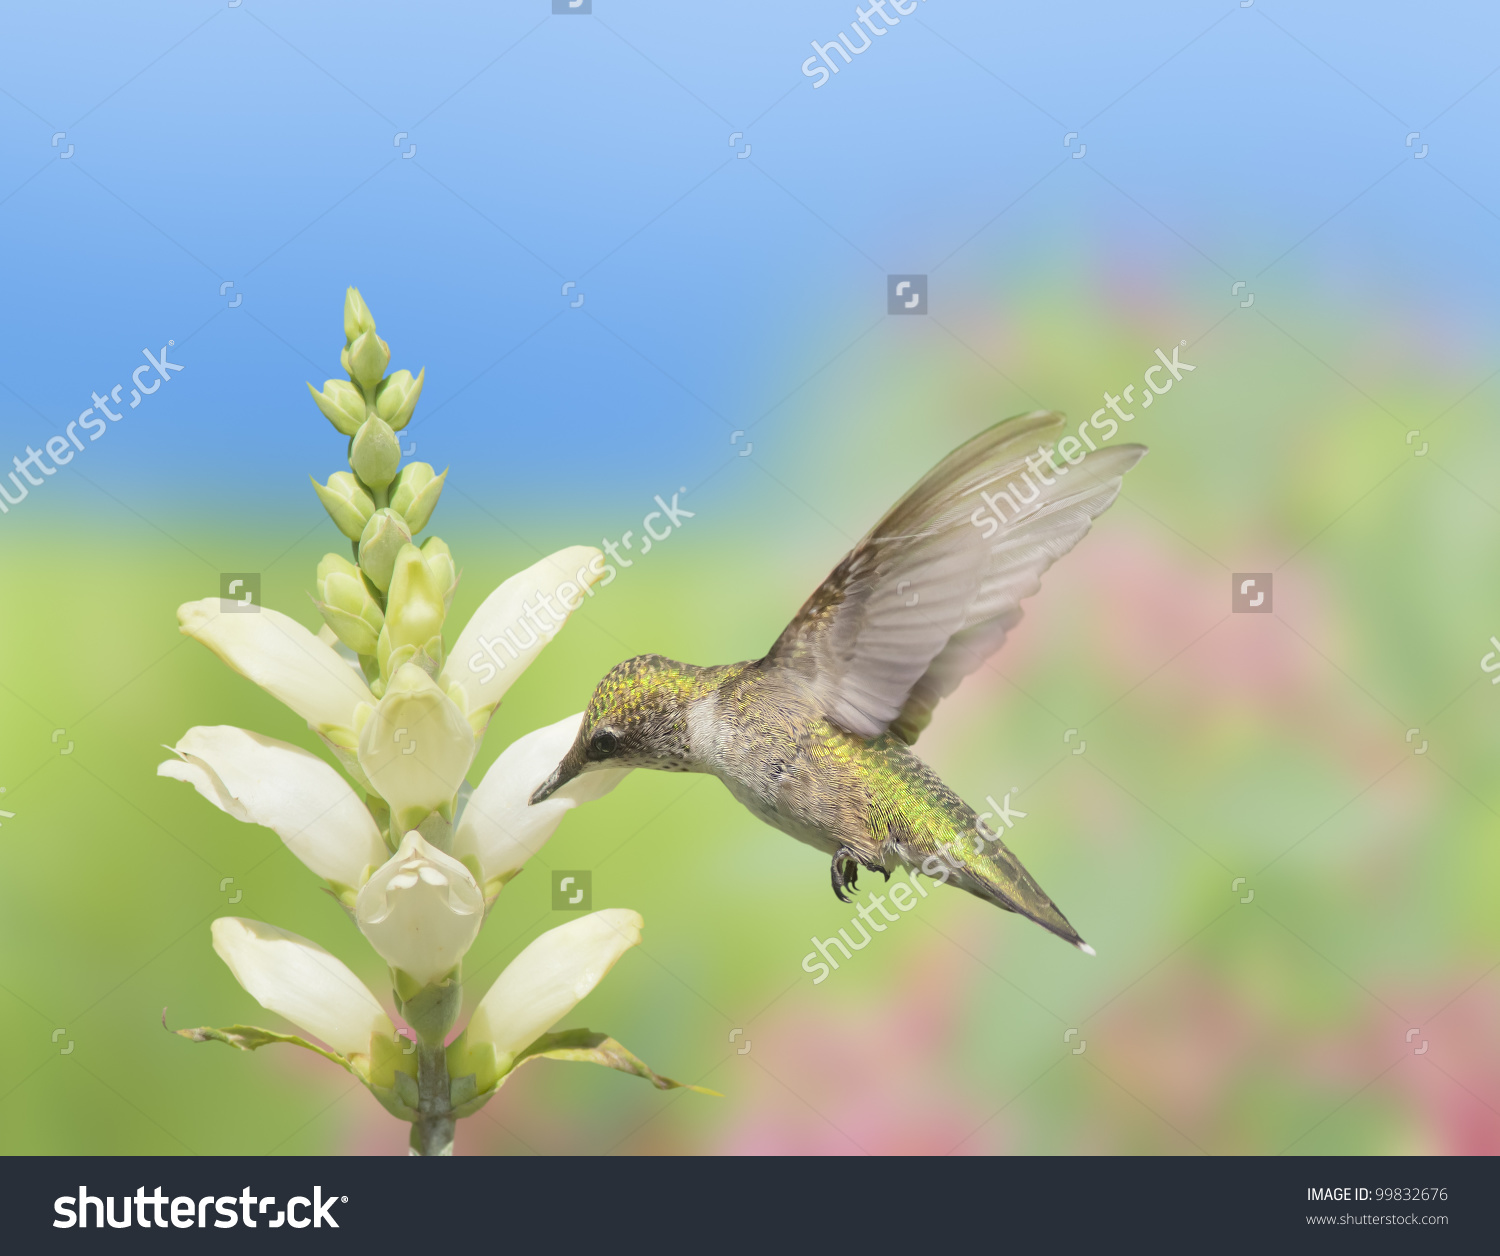 Hummingbird feeding on Turtlehead, latin name - Chelone glabra, white wildflower nectar. Latin name - Archilochus colubris.